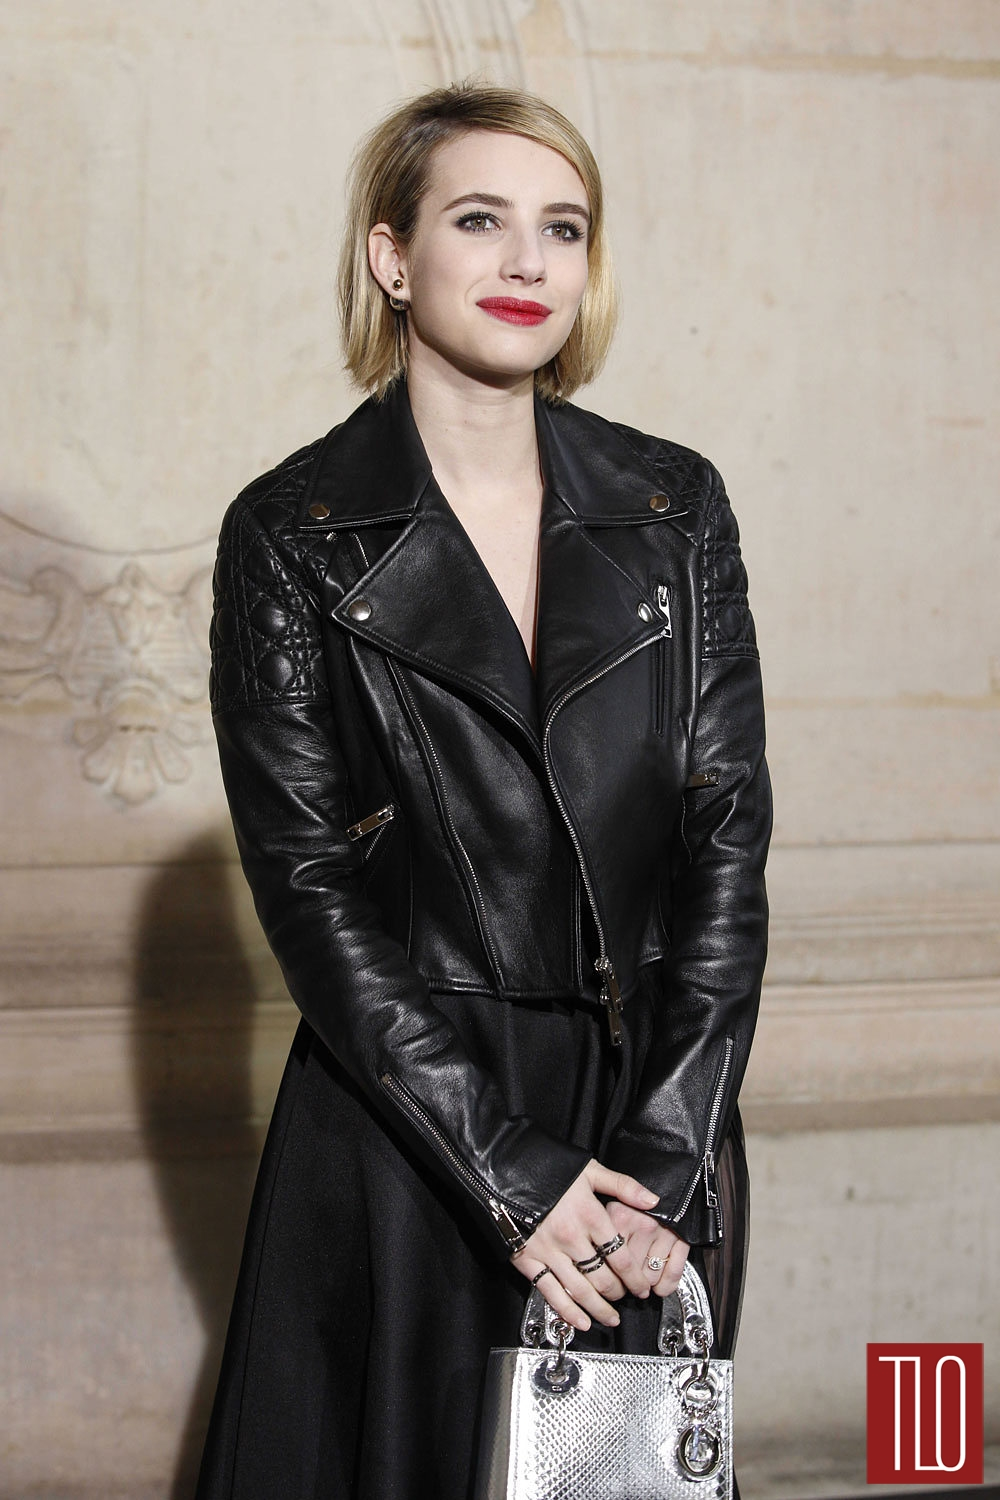 Emma-Thompson-Christian-Dior-Fall-2014-Show-Paris-Tom-Lorenzo-Site-TLO (1)